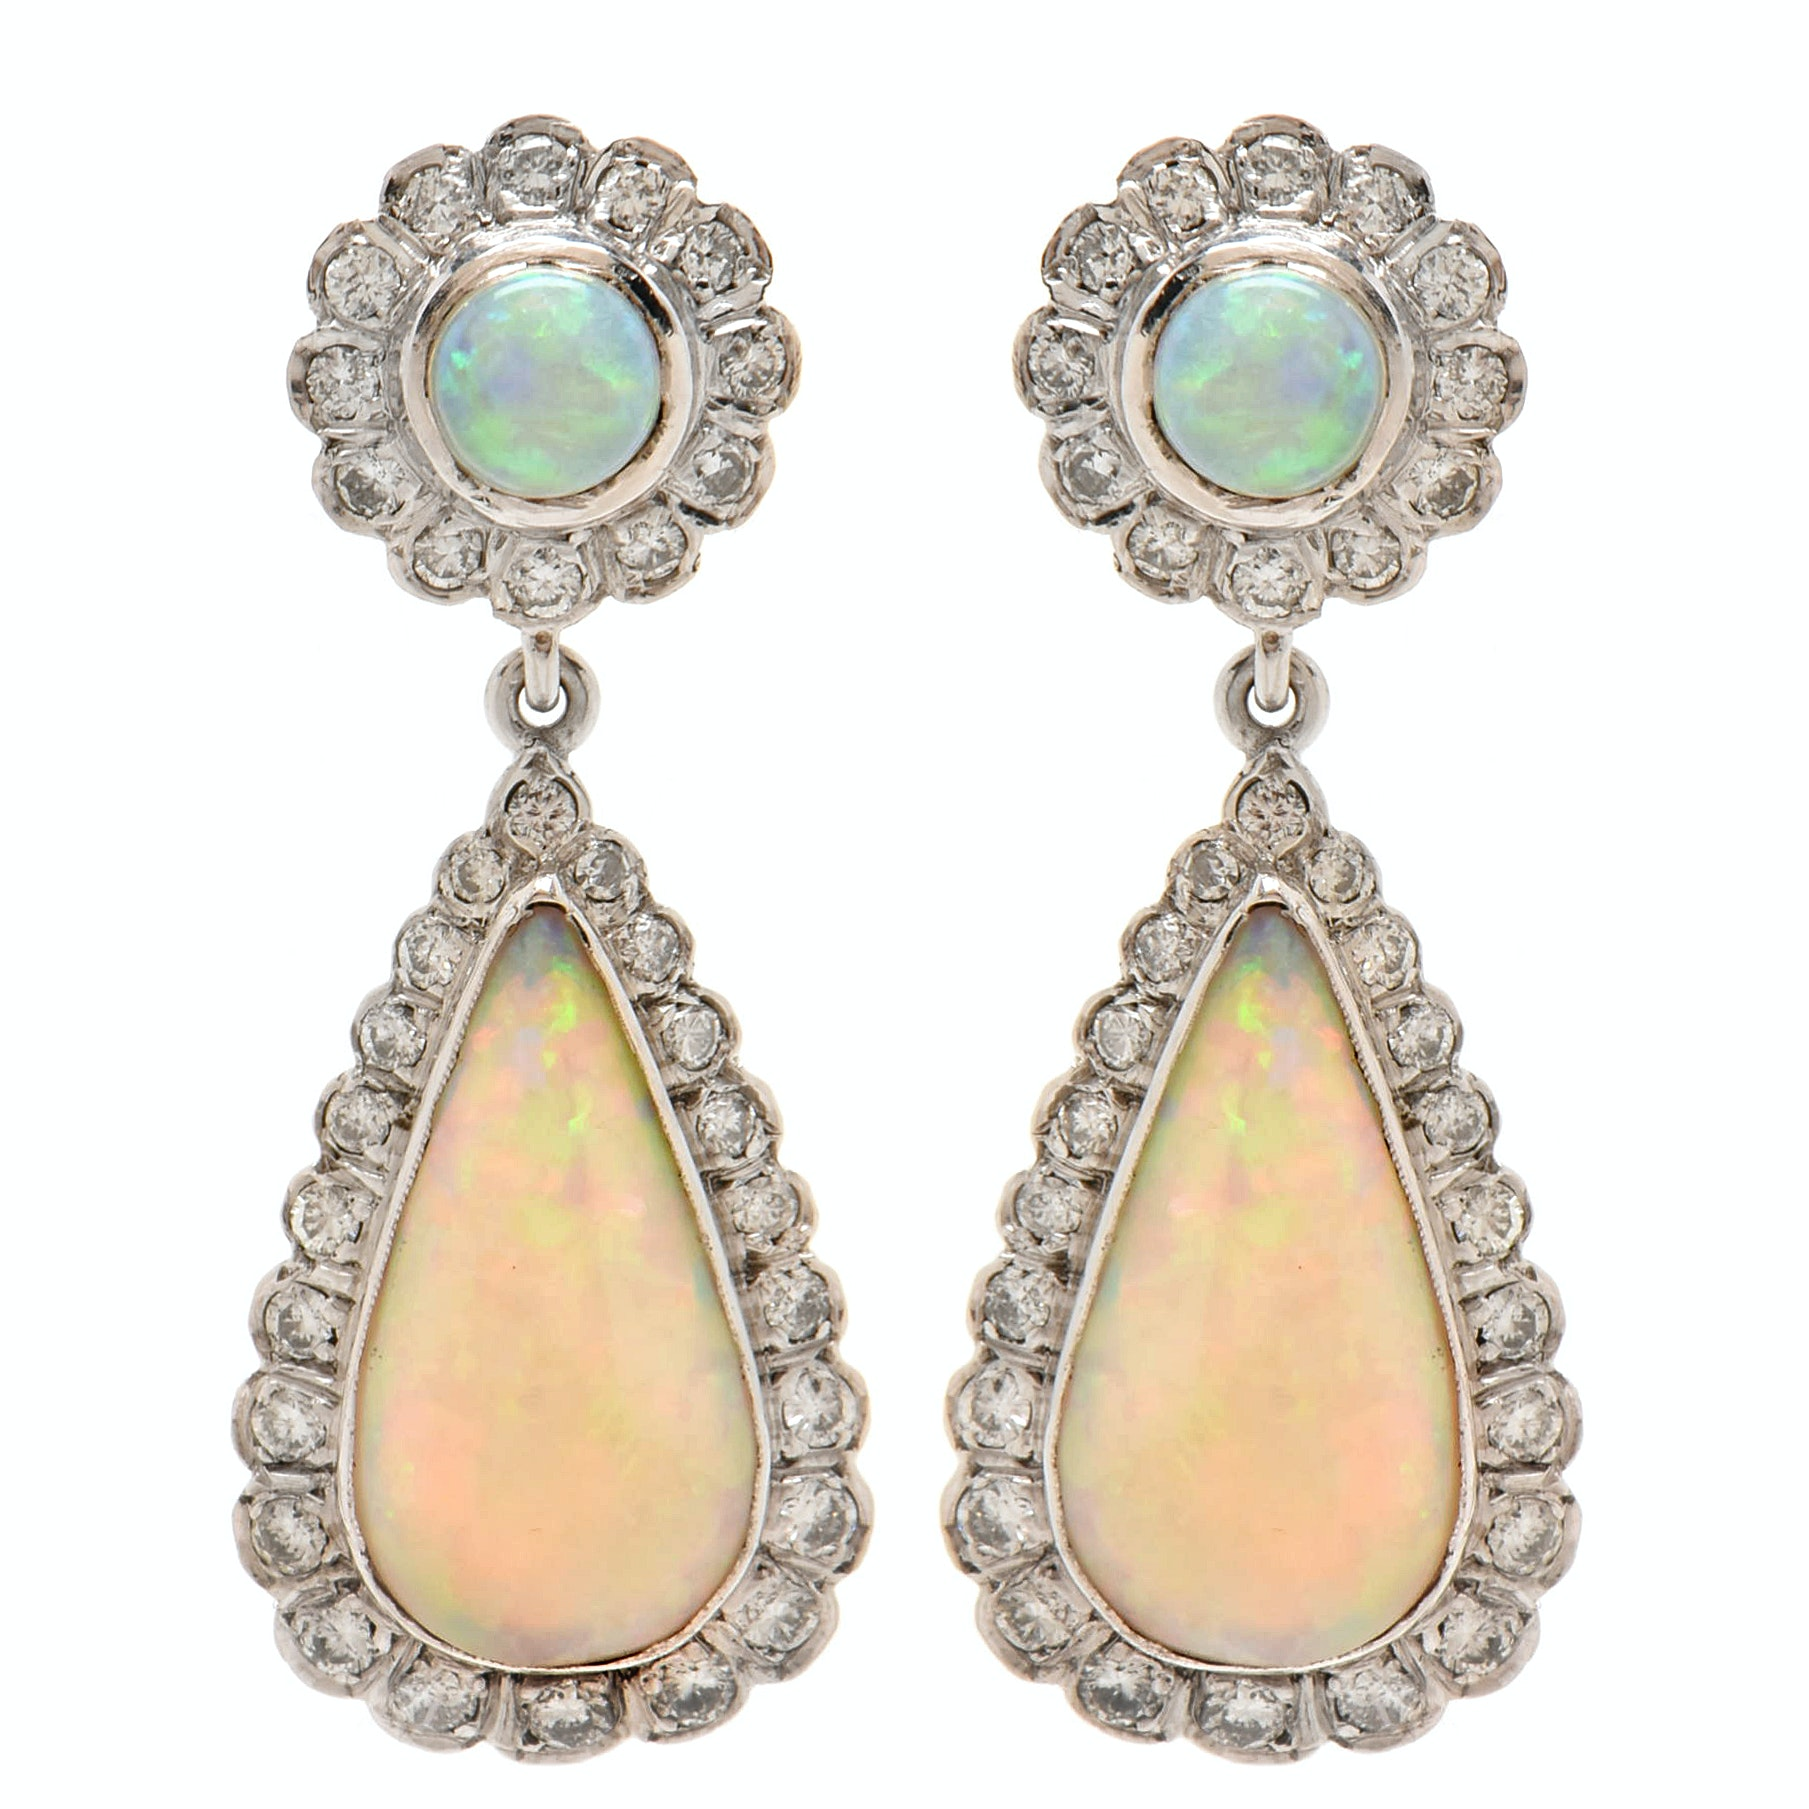 18K White Gold Opal and 2.55 CTW Diamond Teardrop Earrings with 14K White Gold